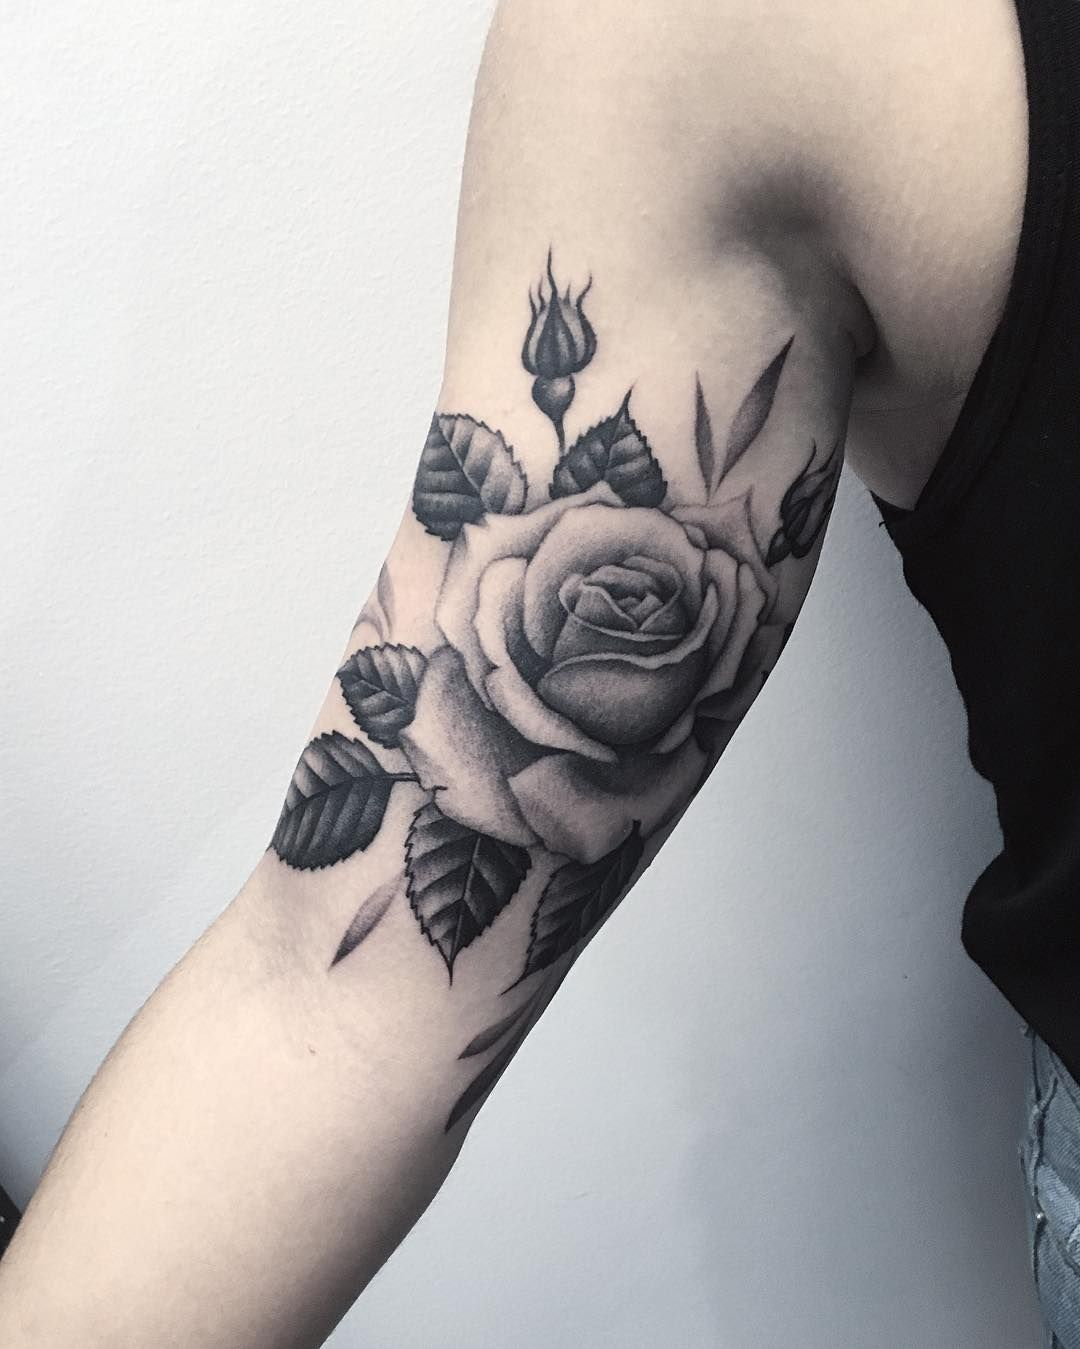 Rose Tattoofor Arm To Chest: 27 Inspiring Rose Tattoos Designs